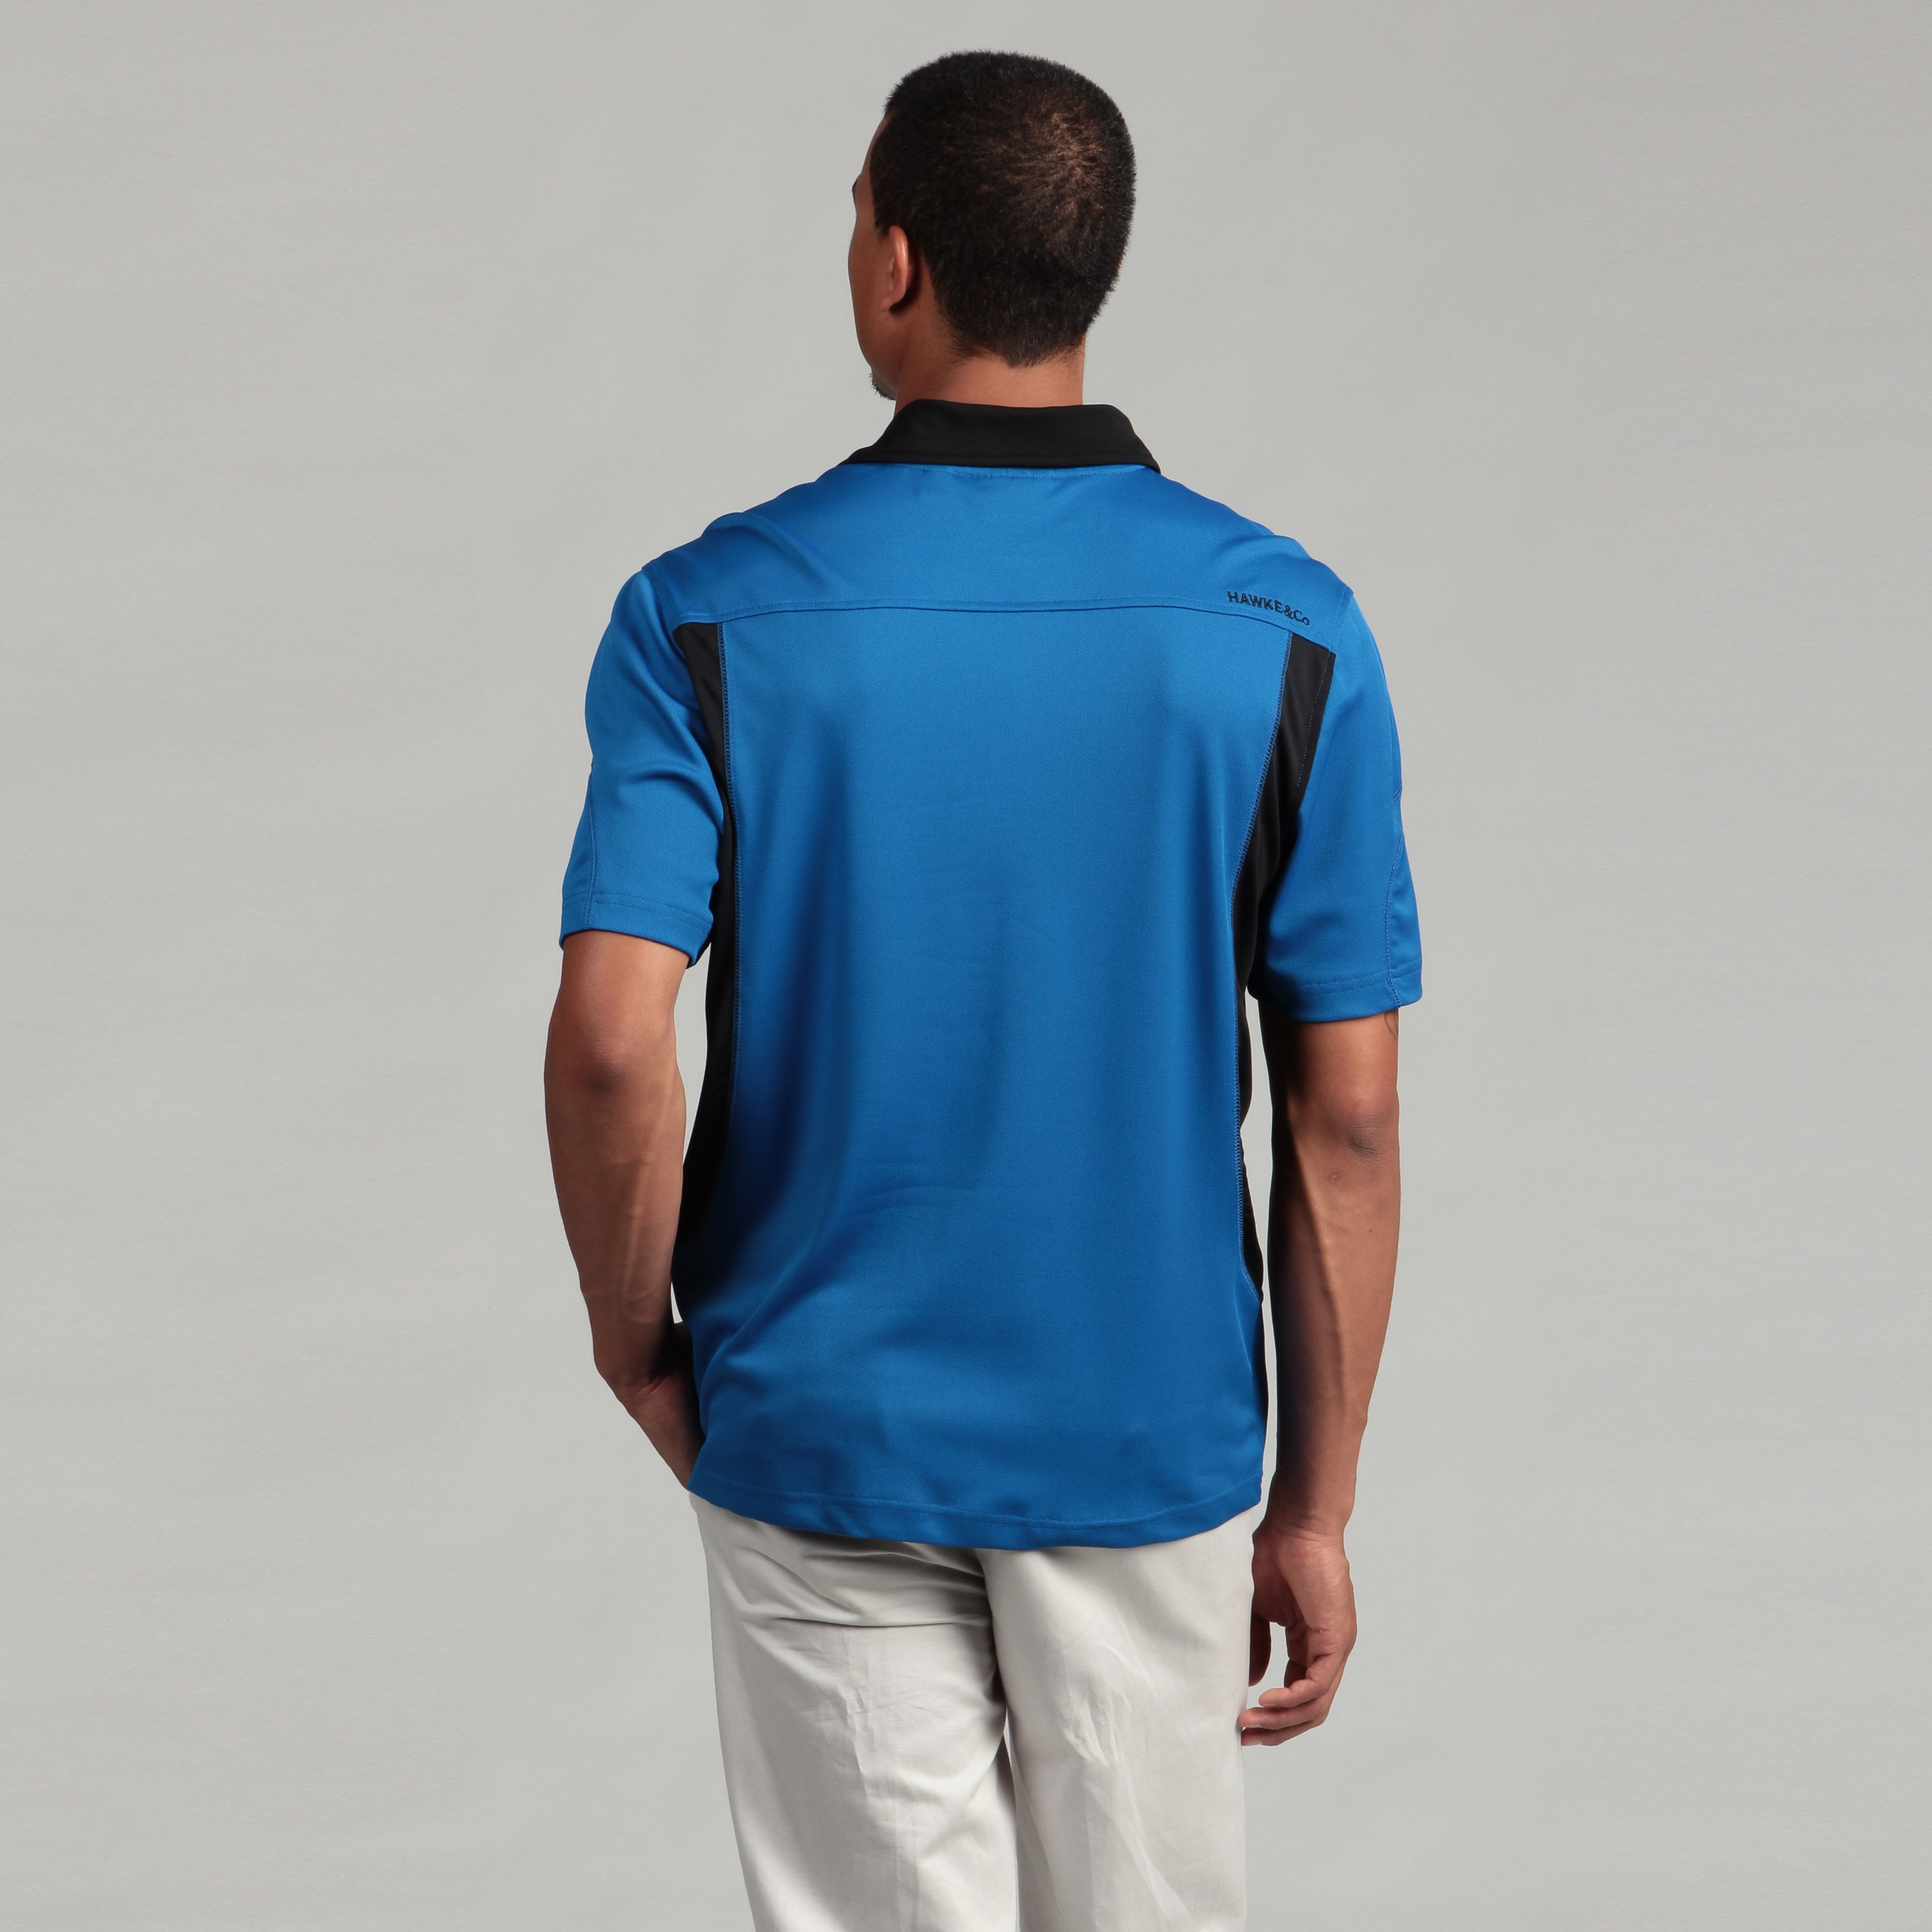 Hawke & Co Polo Shirt Performance Sportswear